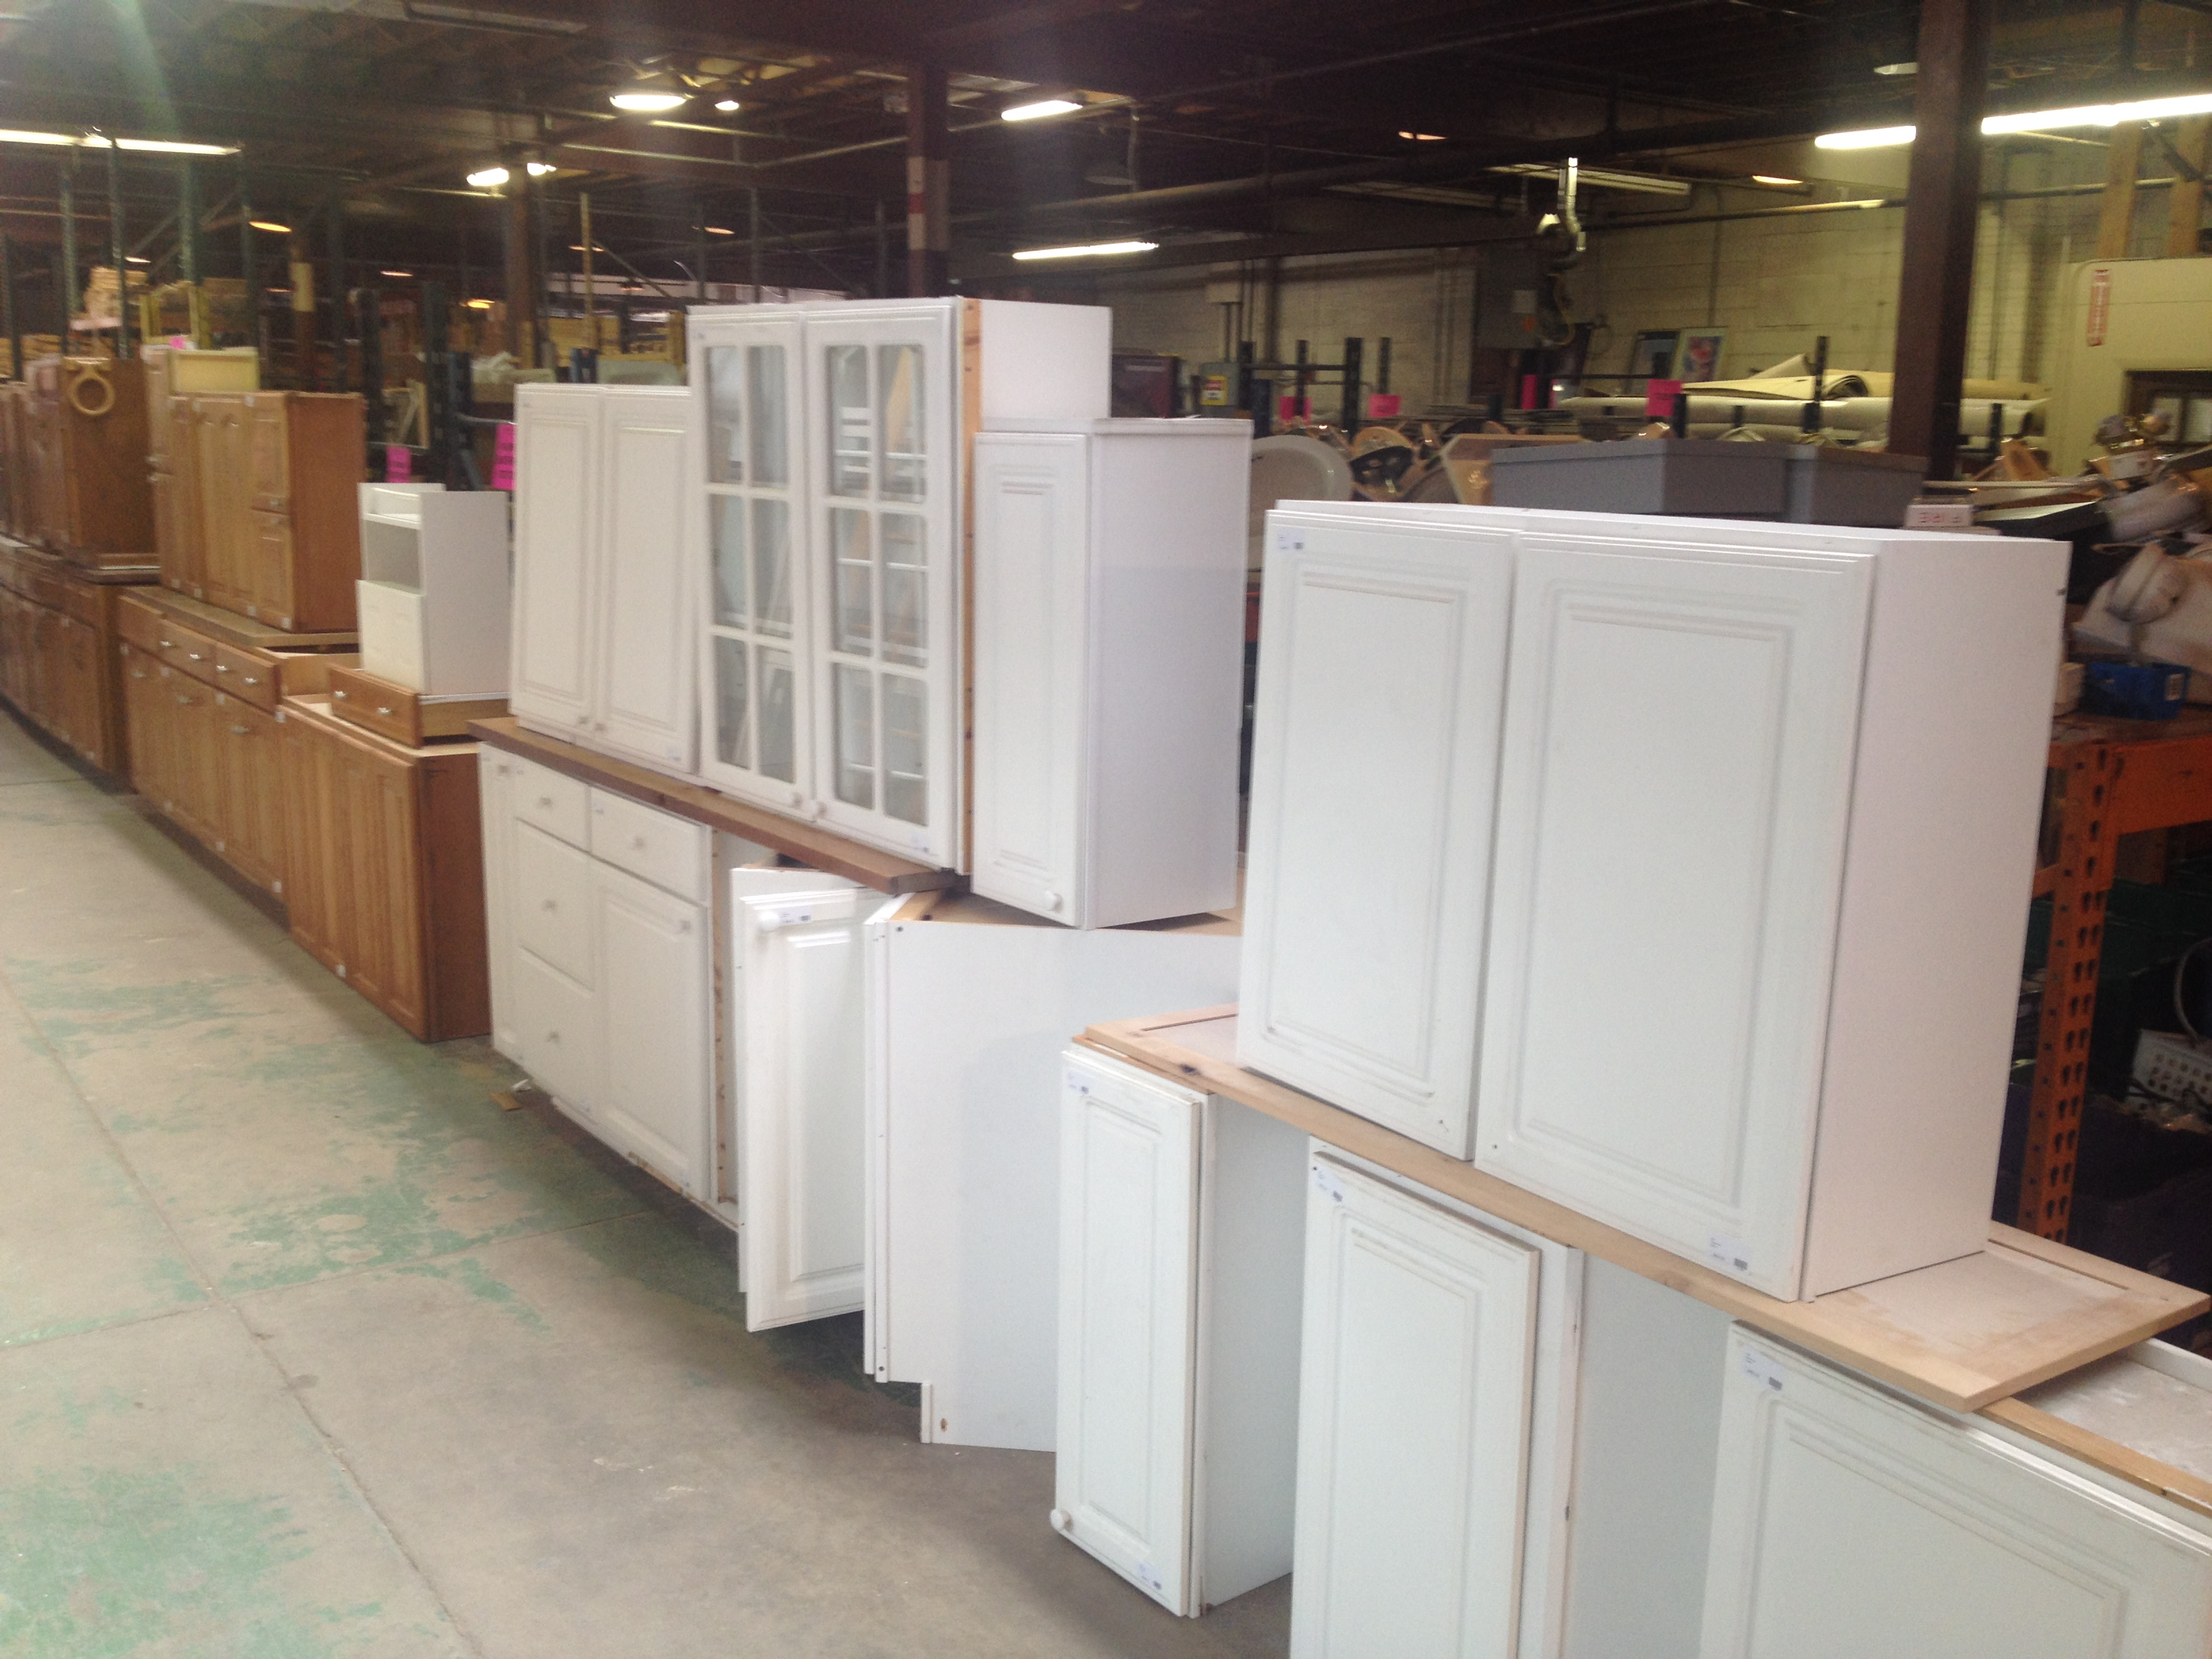 2 used kitchen cabinets Cabs